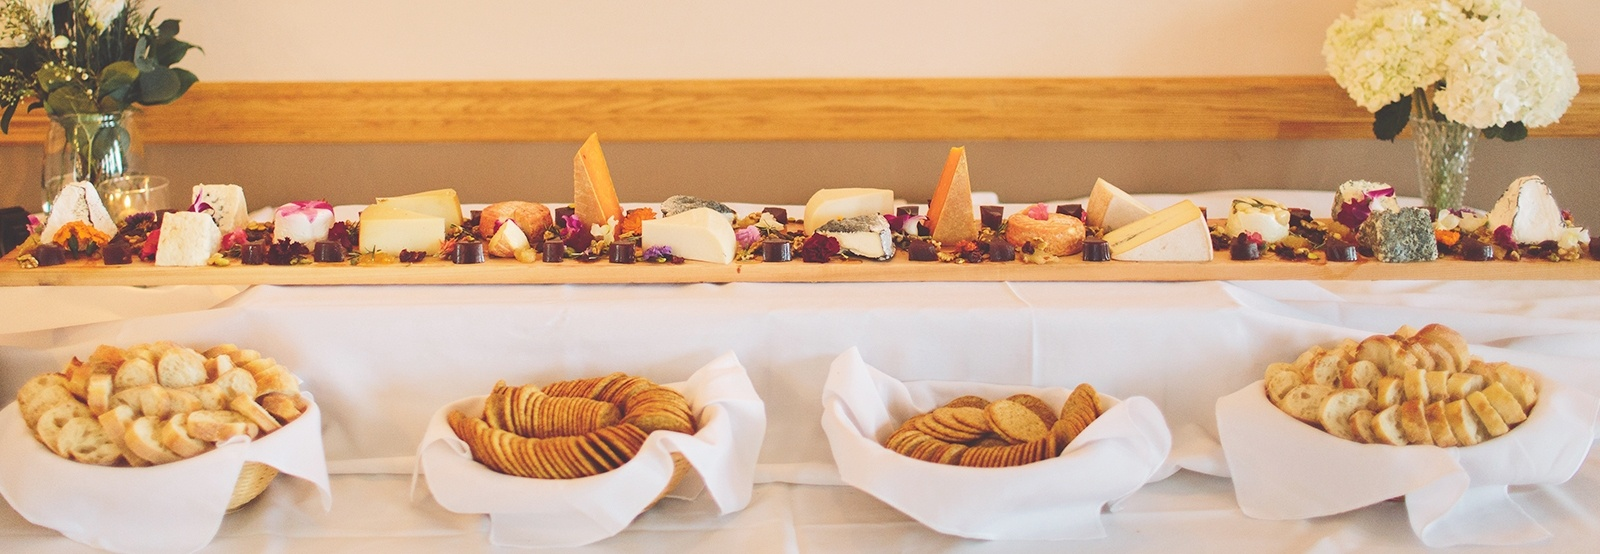 catering services Vancouver, BC